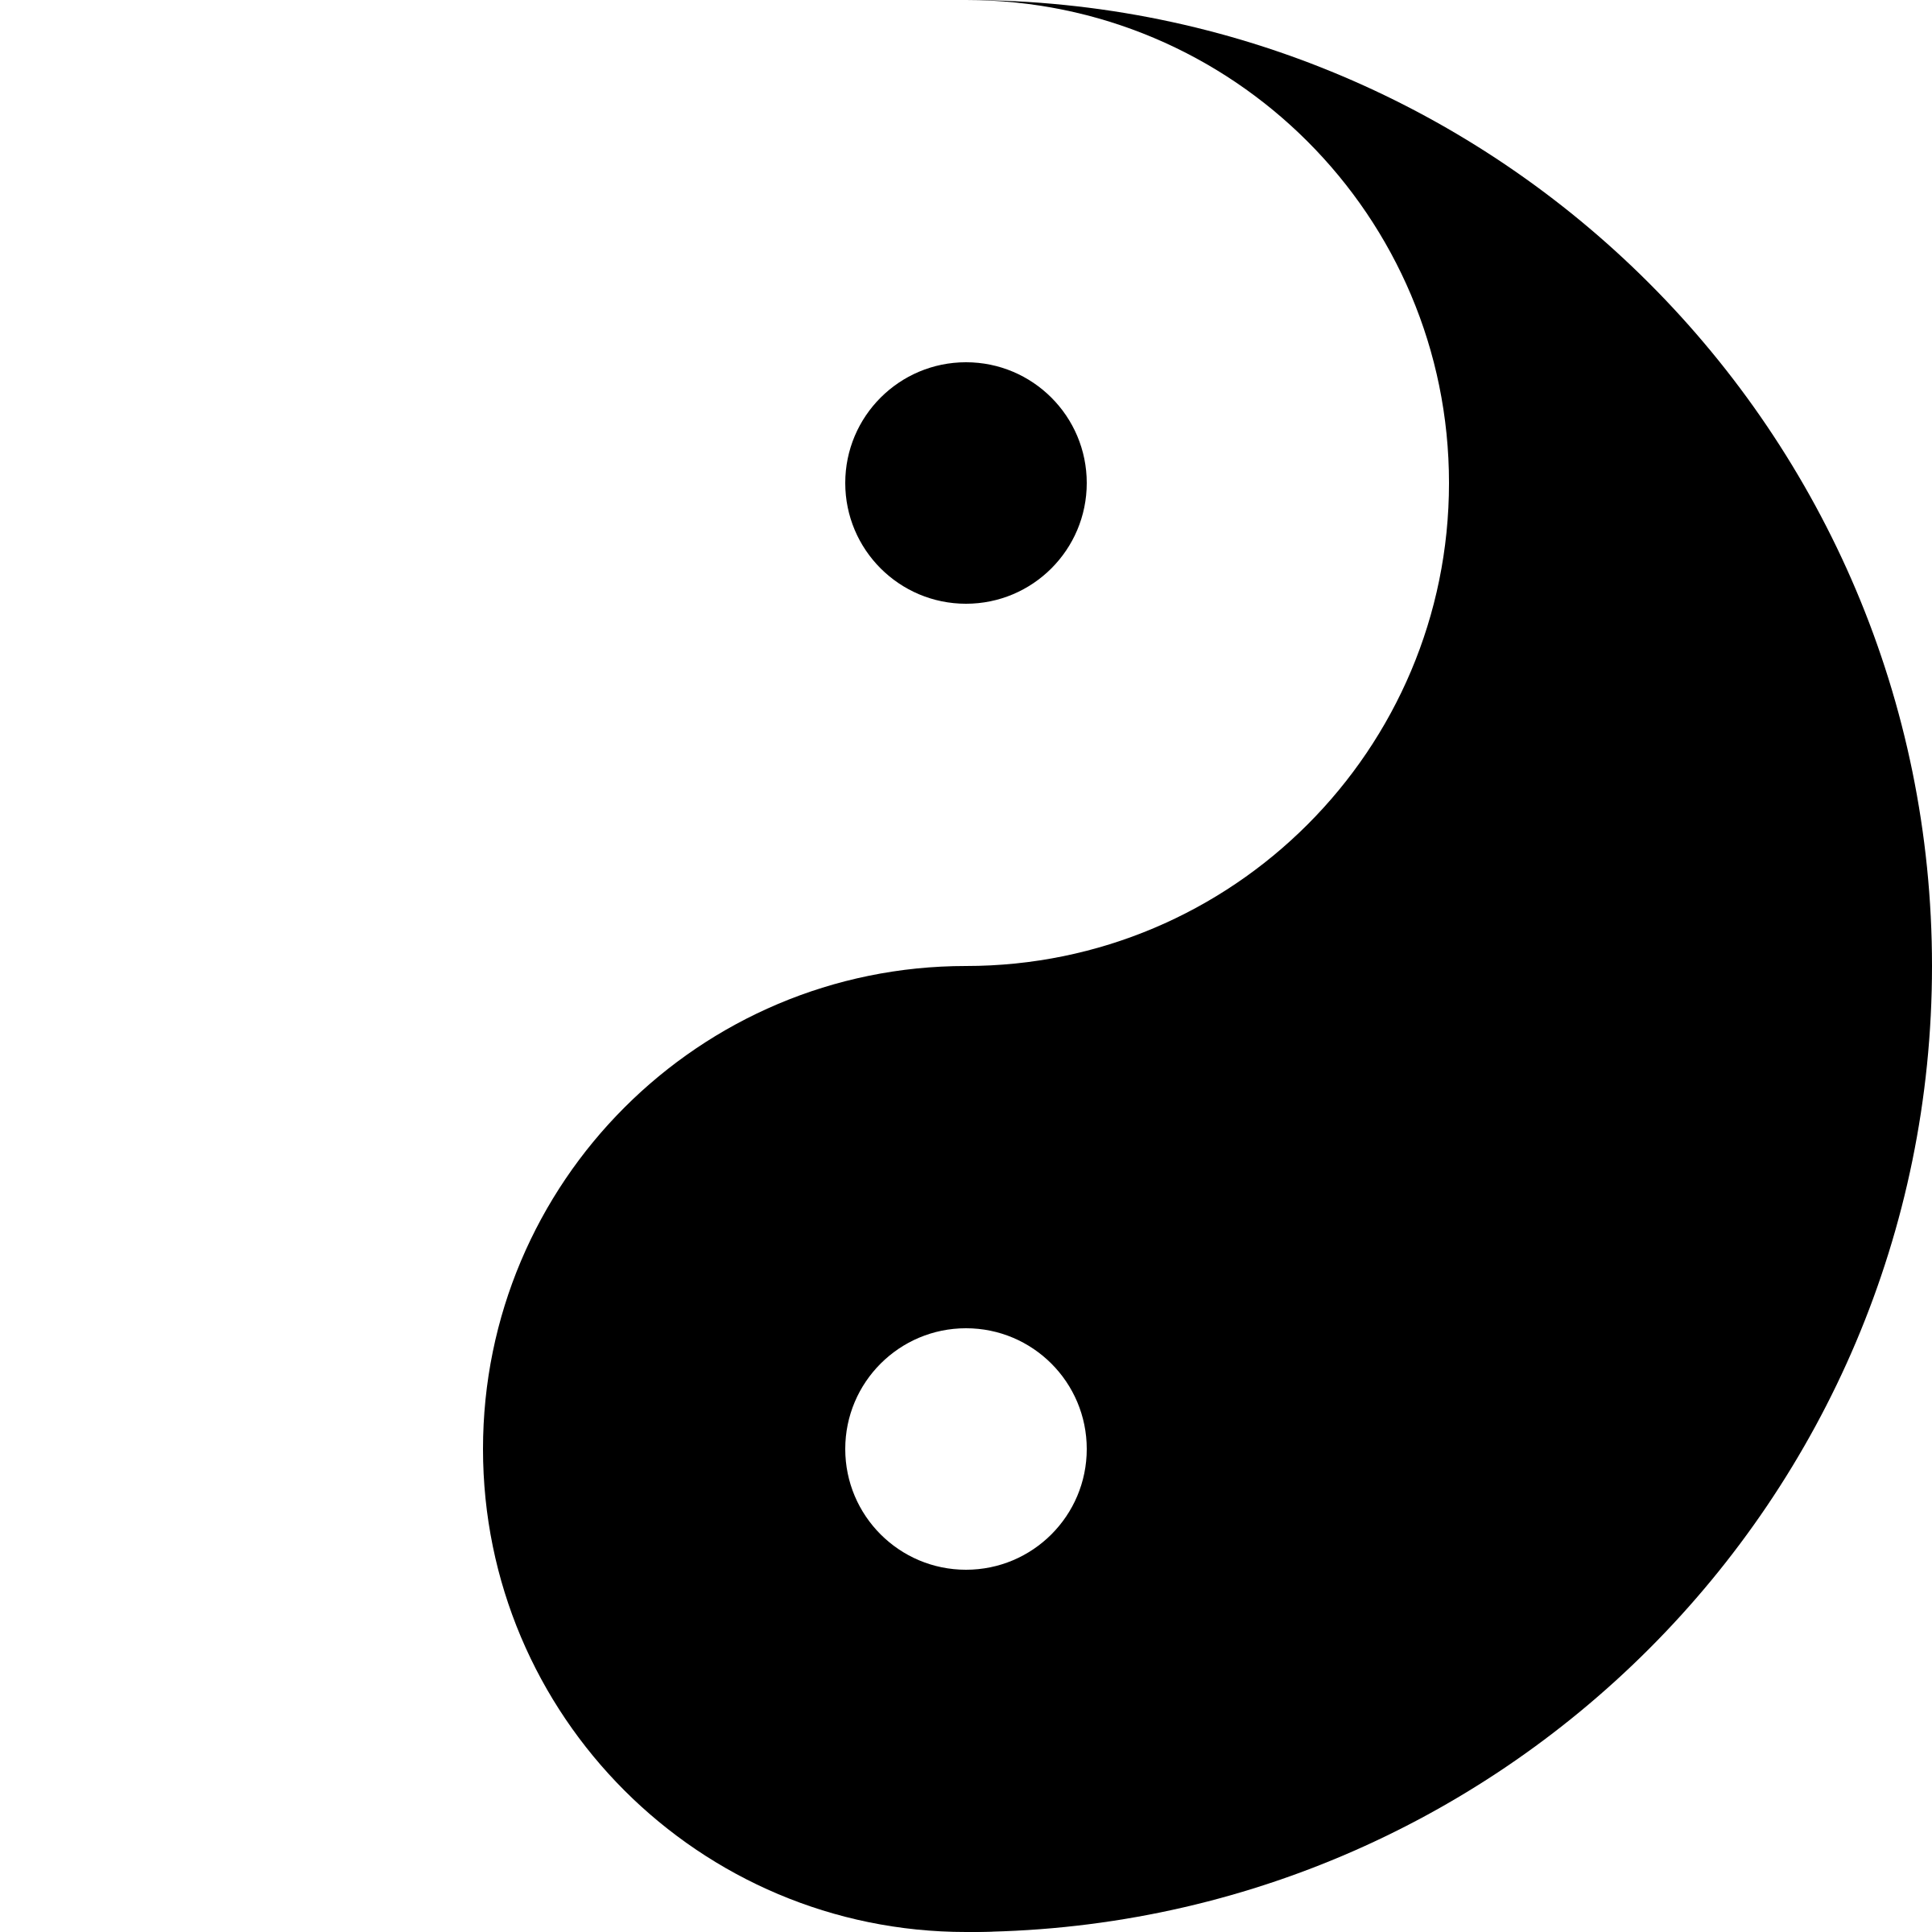 Yin Yang or Taiji Symbol, From InText